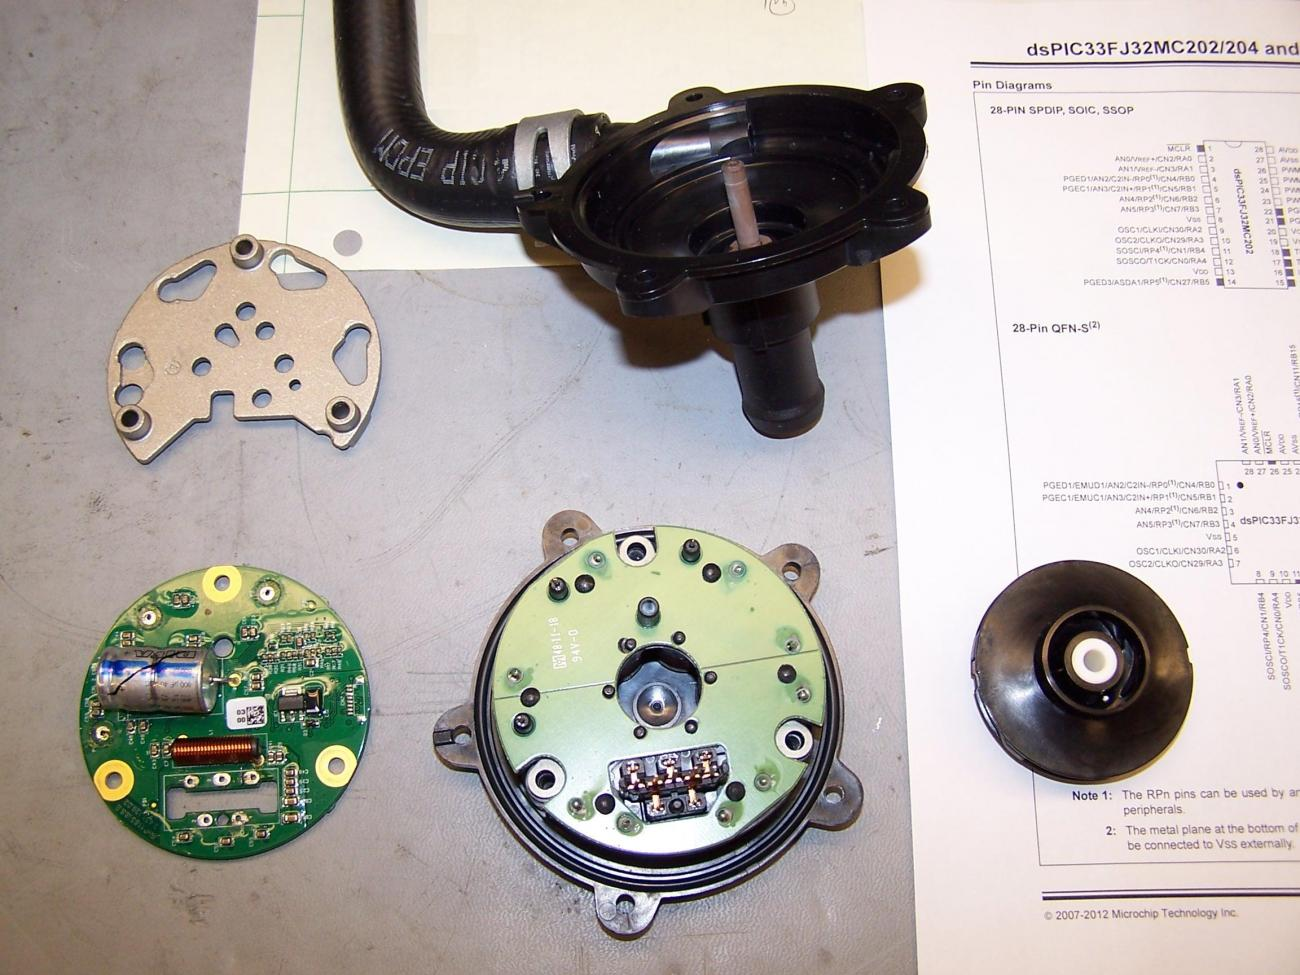 Zl1 Lsa Supercharger Intercooler Pump Inside Look Camaro5 Chevy 2010 Cts V Wiring Diagram Attached Images